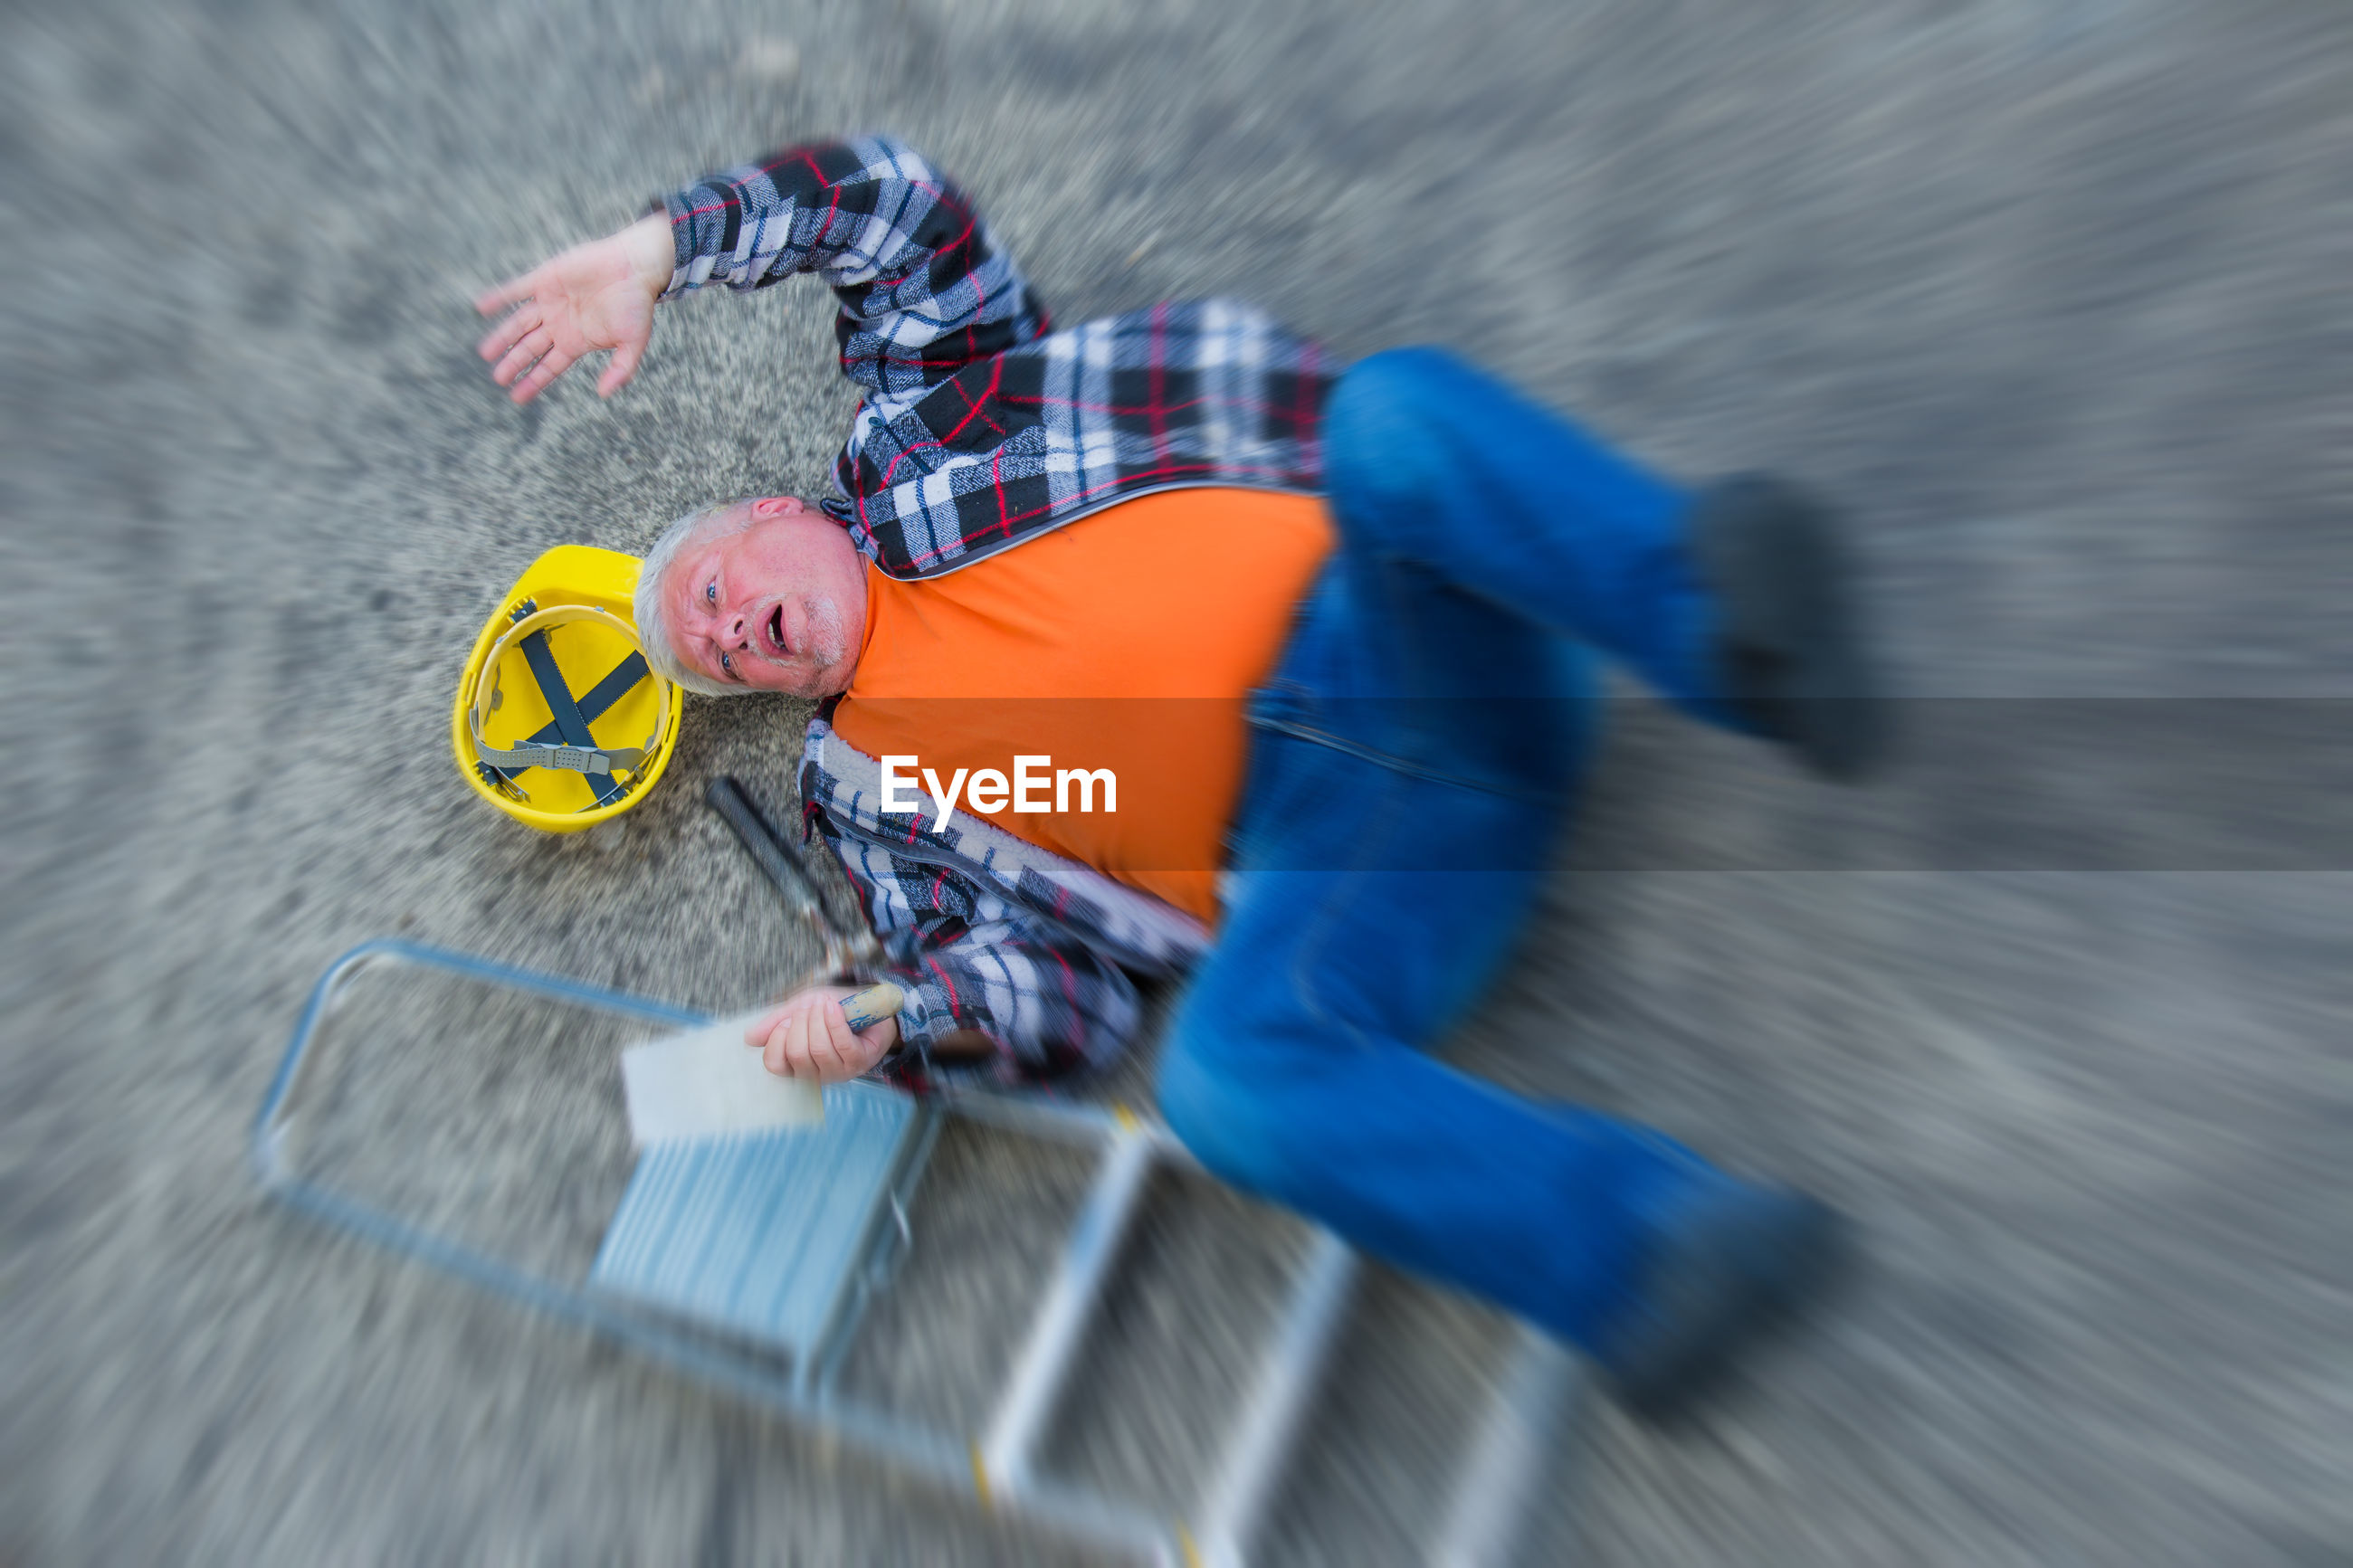 Blurred motion of man fallen on road by ladder and hardhat